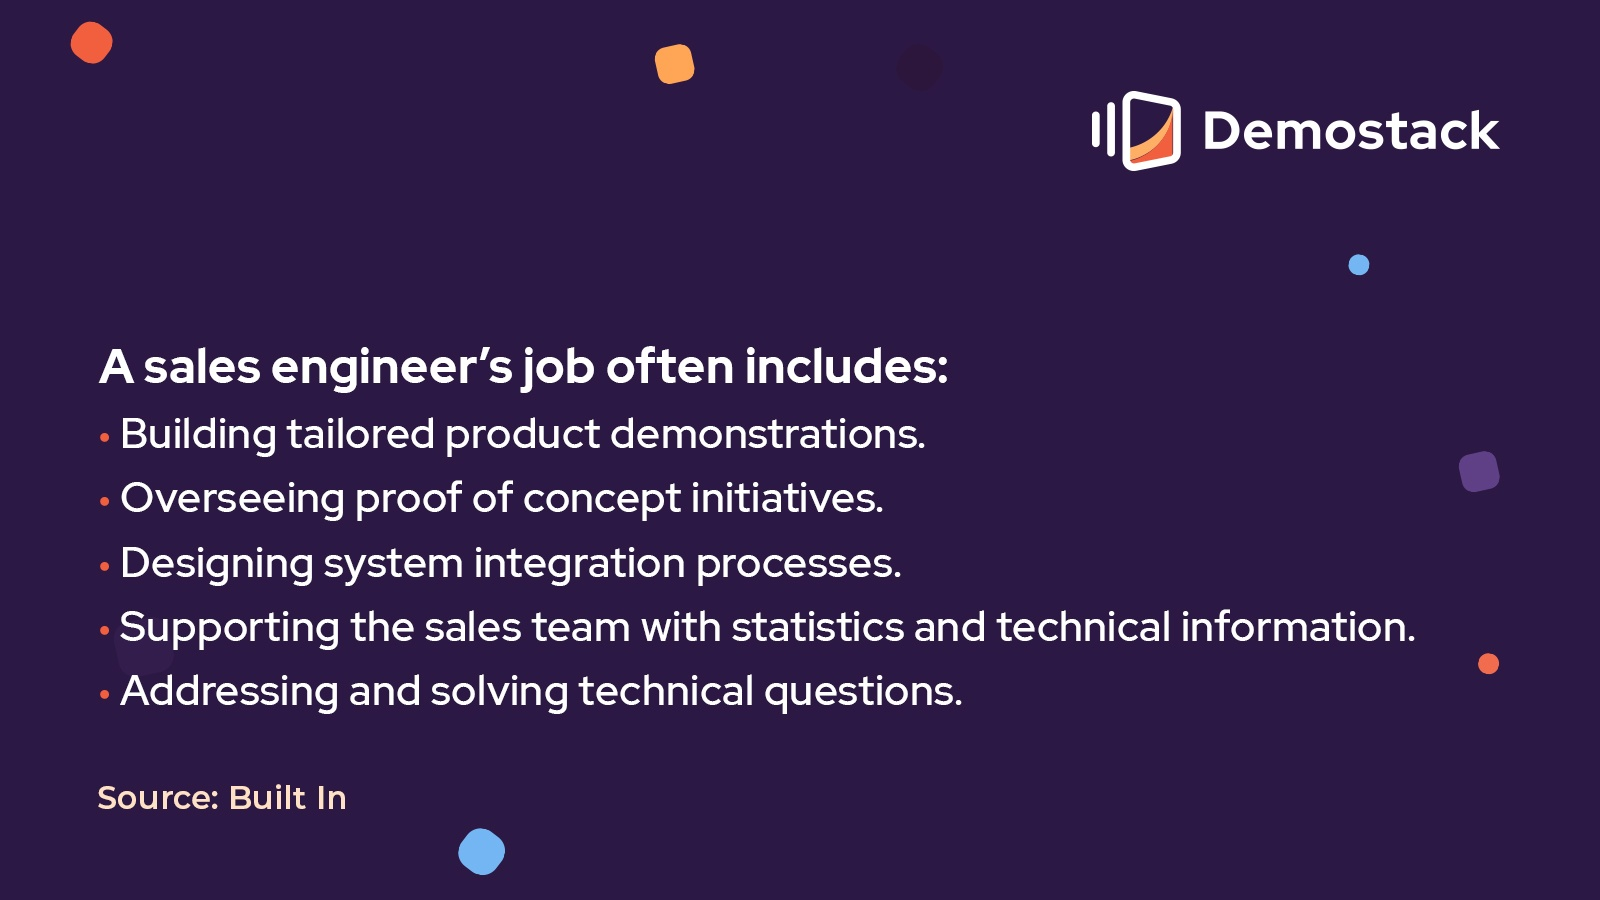 According to Built In, a sales engineer's job often includes:Building tailored product demonstrations.Overseeing proof of concept initiatives.Designing system integration processes.Supporting the sales team with statistics and technical information.Addressing and solving technical questions.